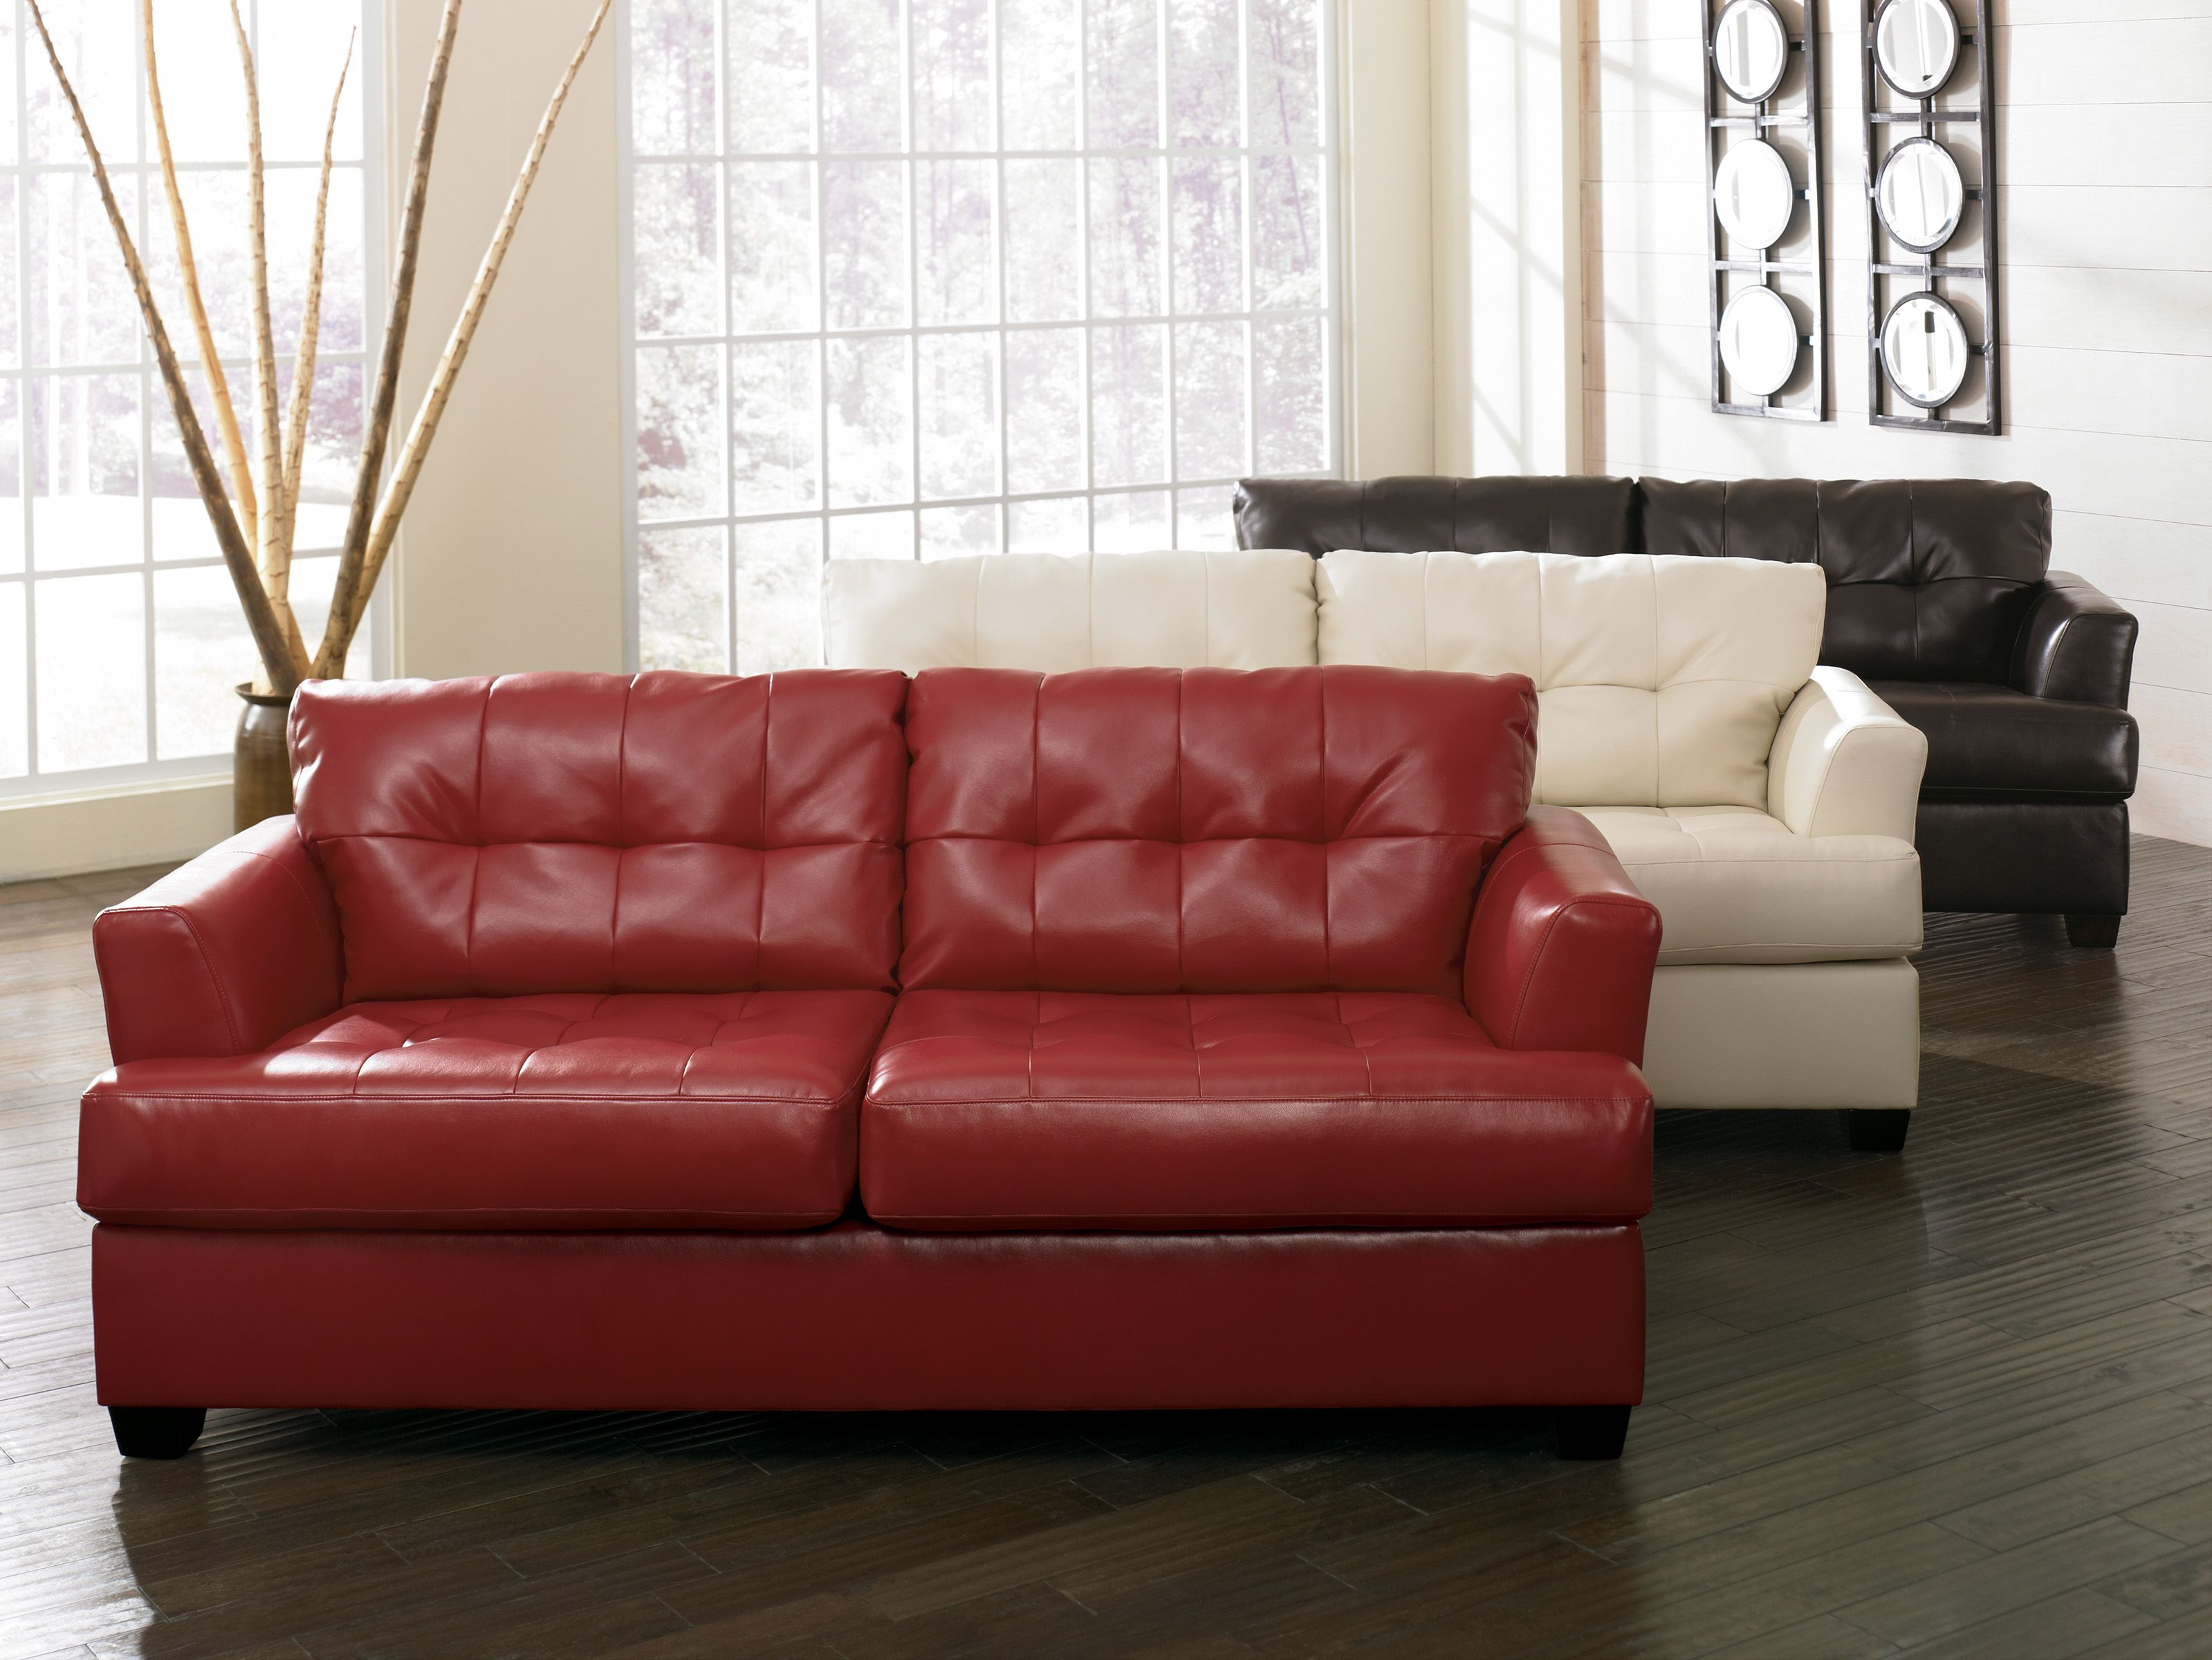 - 946 Red, Ivory And Chocolate Furniture, Red Leather Couches